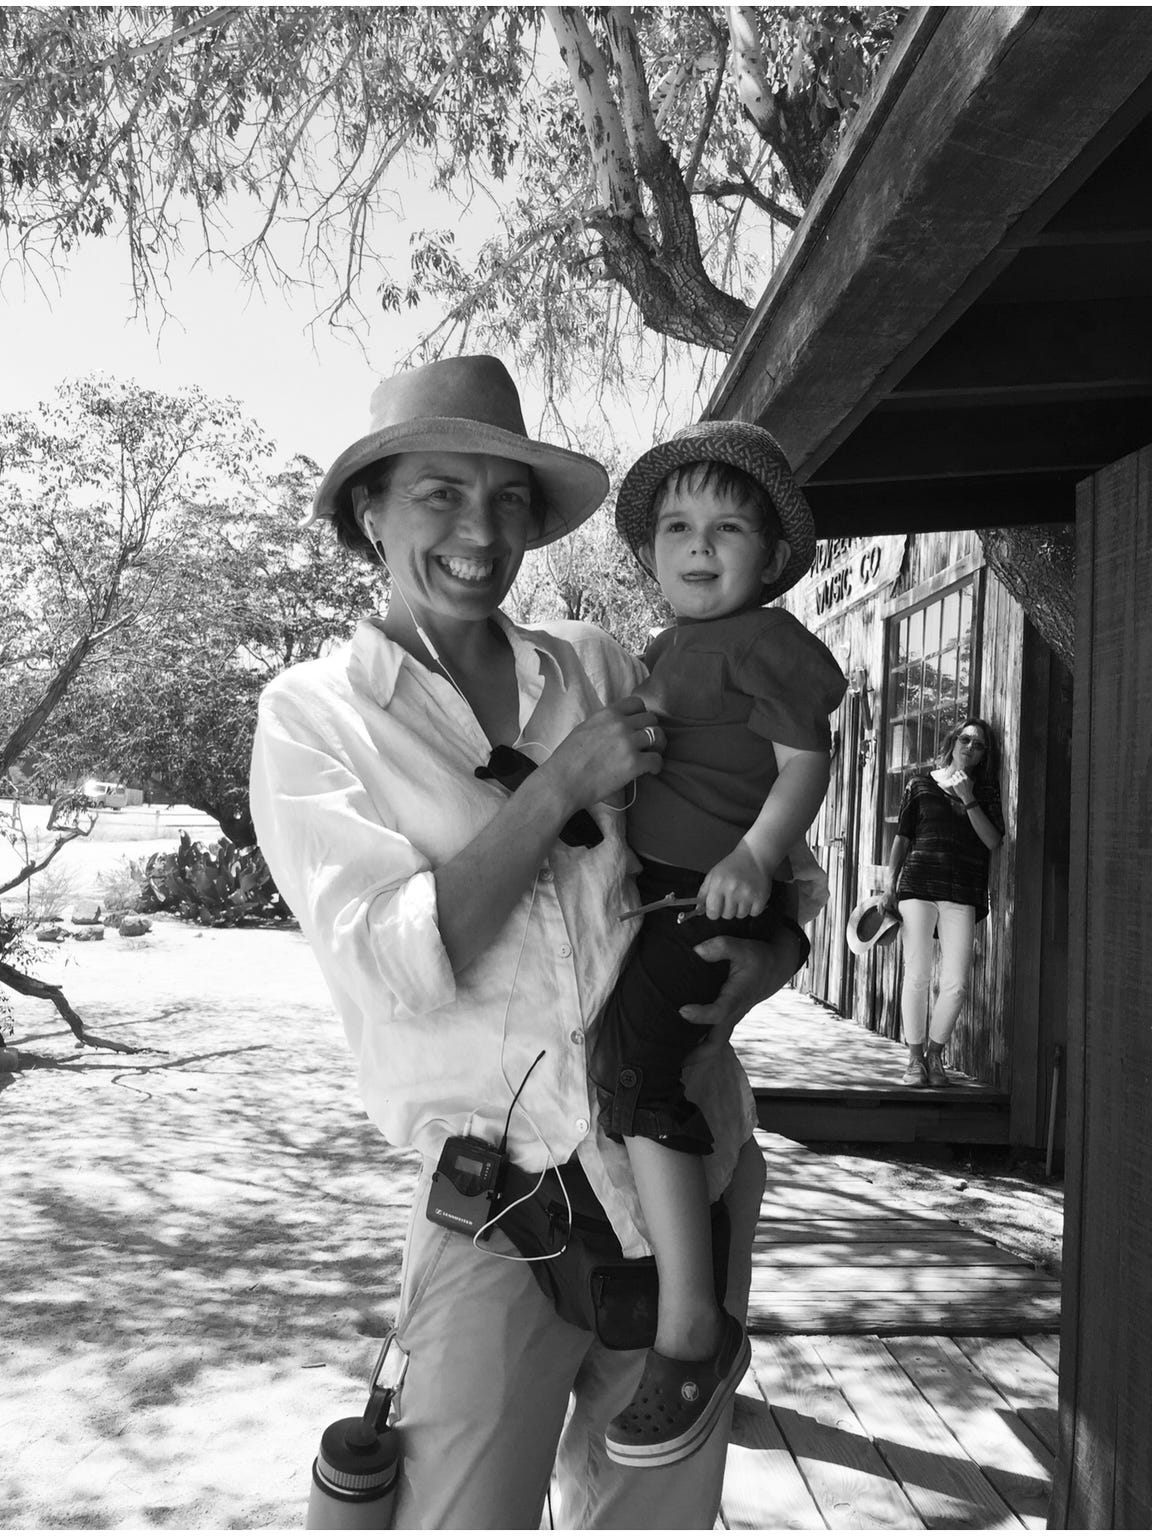 Writer/director Diane Bell takes a play break with her 3-year-old son, Tenny, who has accompanied the crew for a month of filming in Joshua Tree.